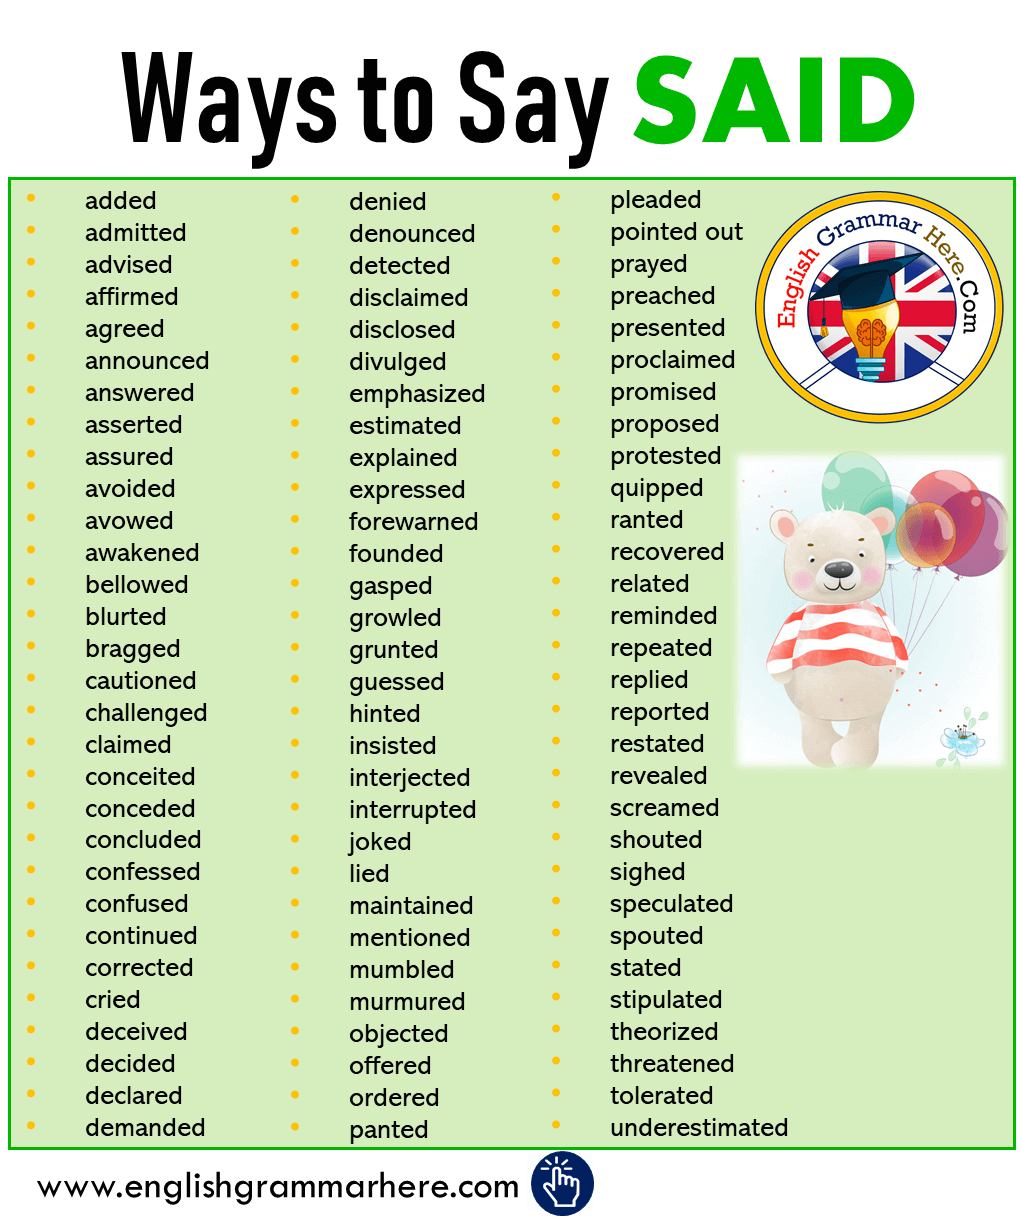 Different Ways to Say SAID in English